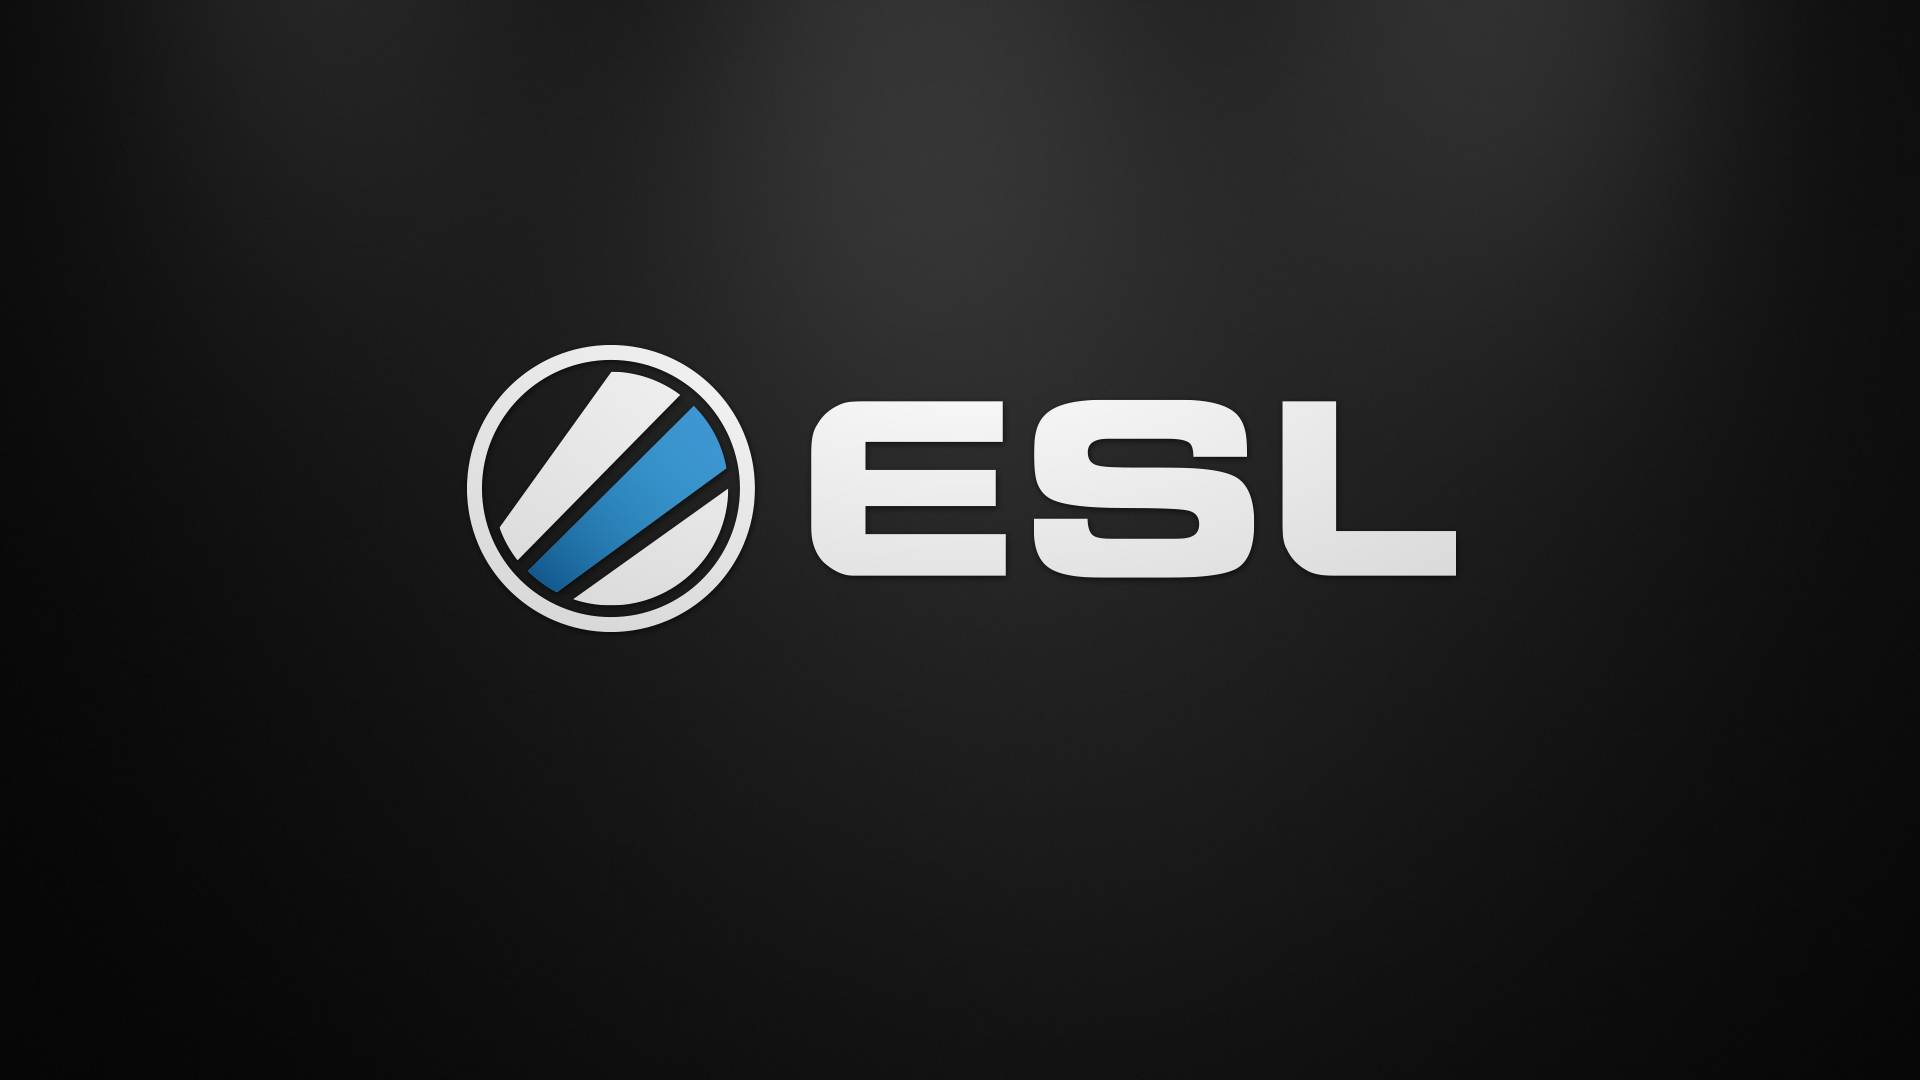 ESL_logo_darkbg-buffed